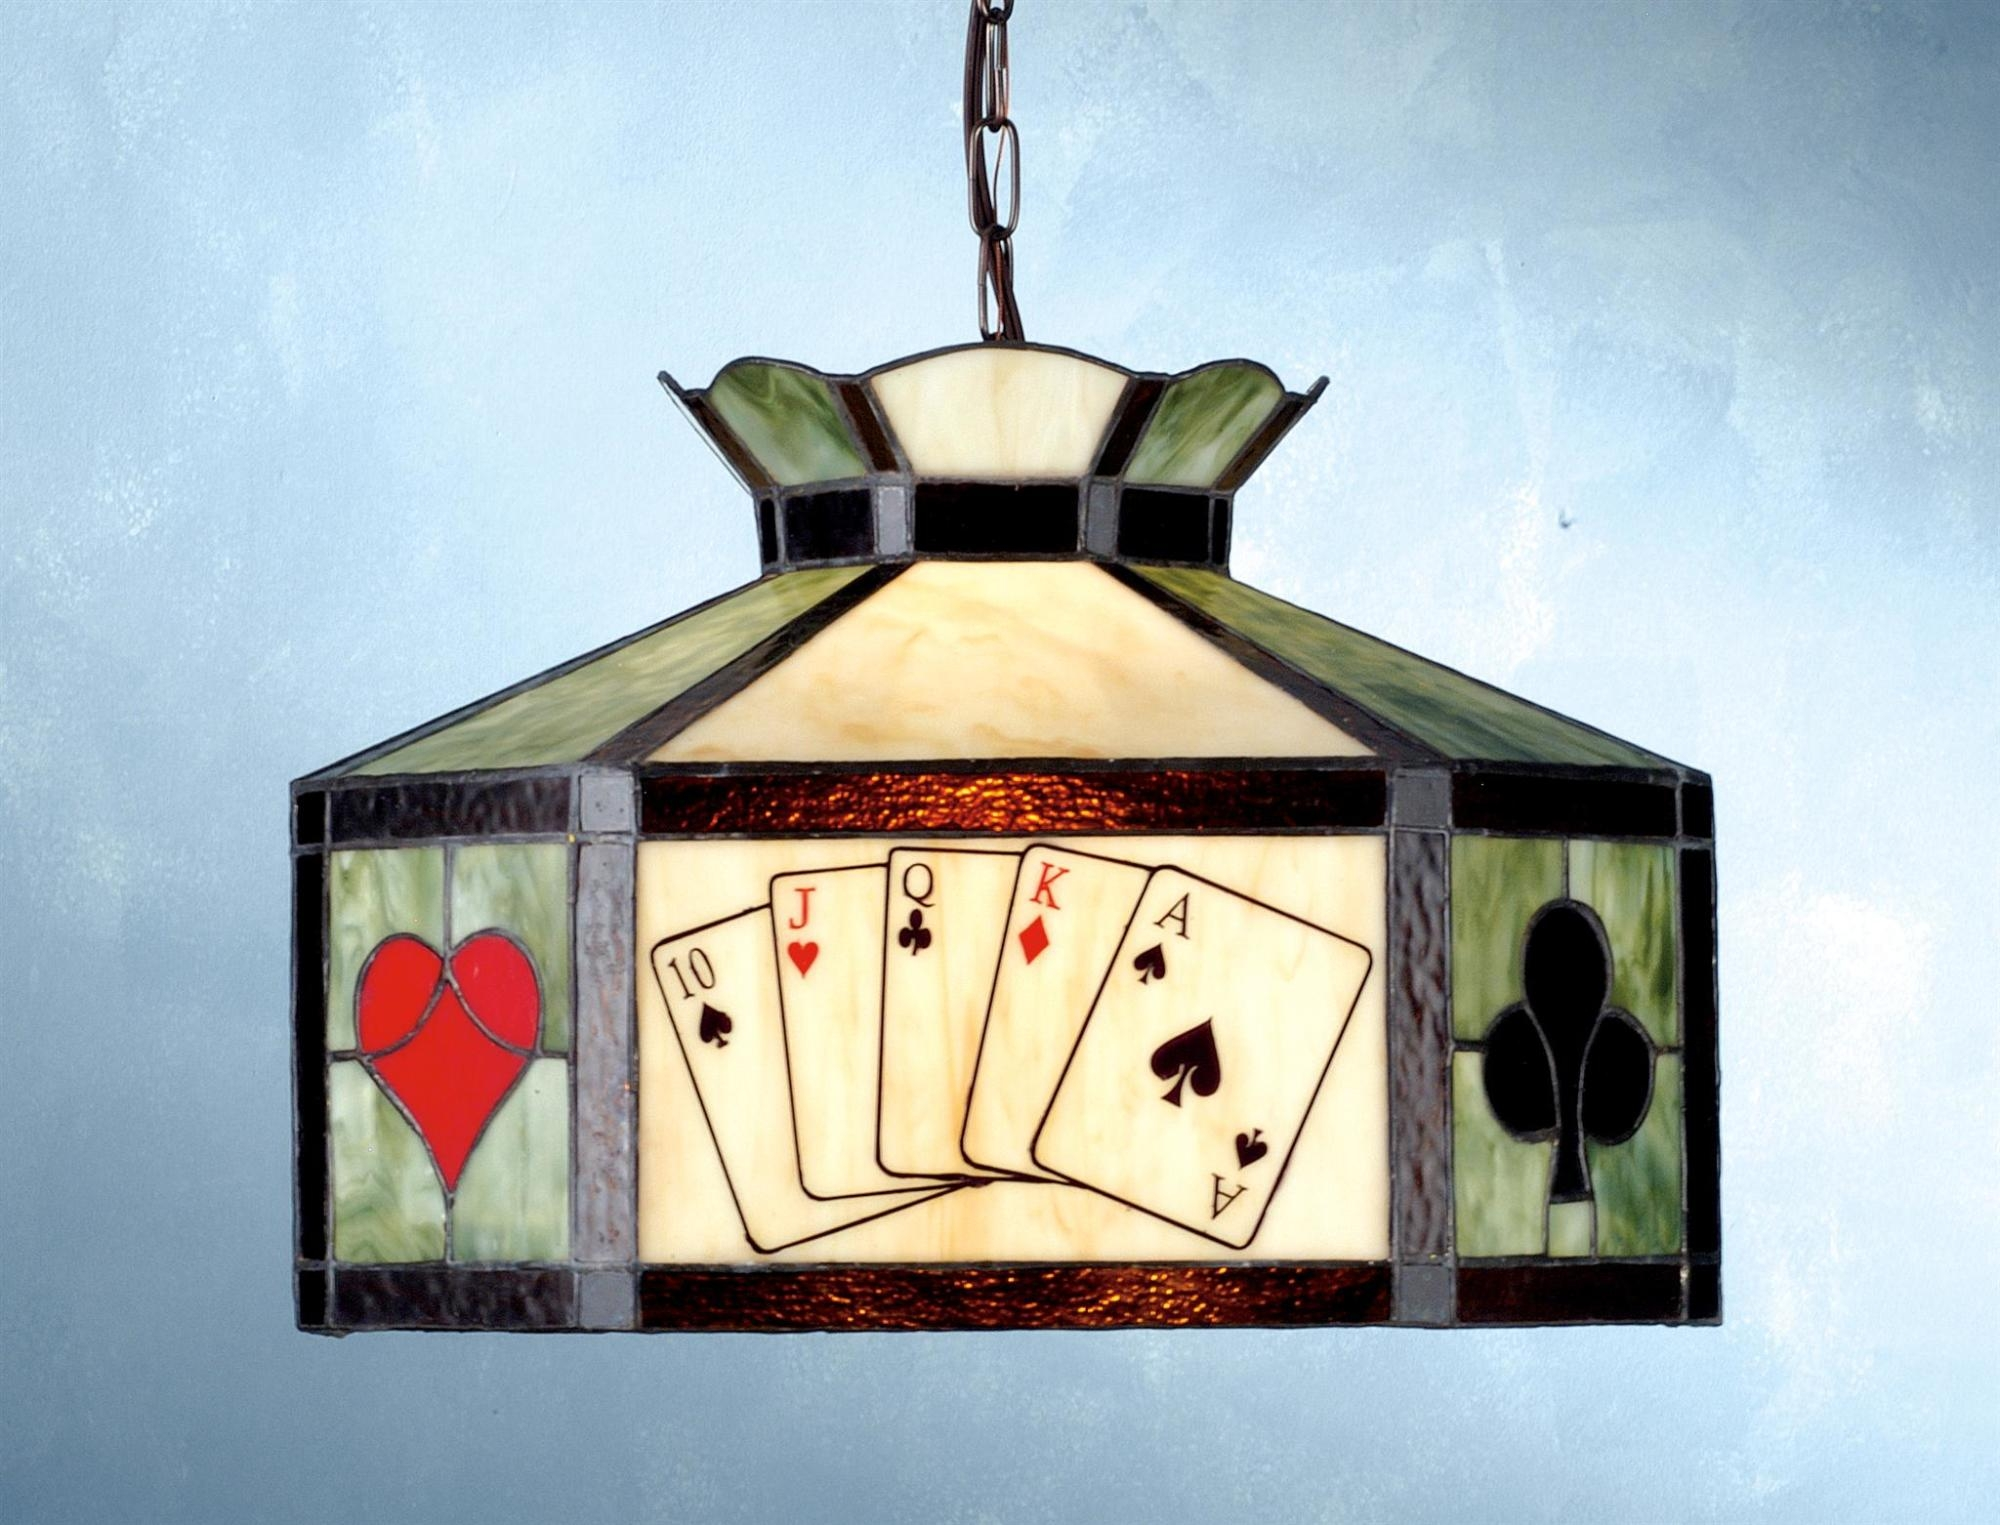 15 poker pendant swag lamp